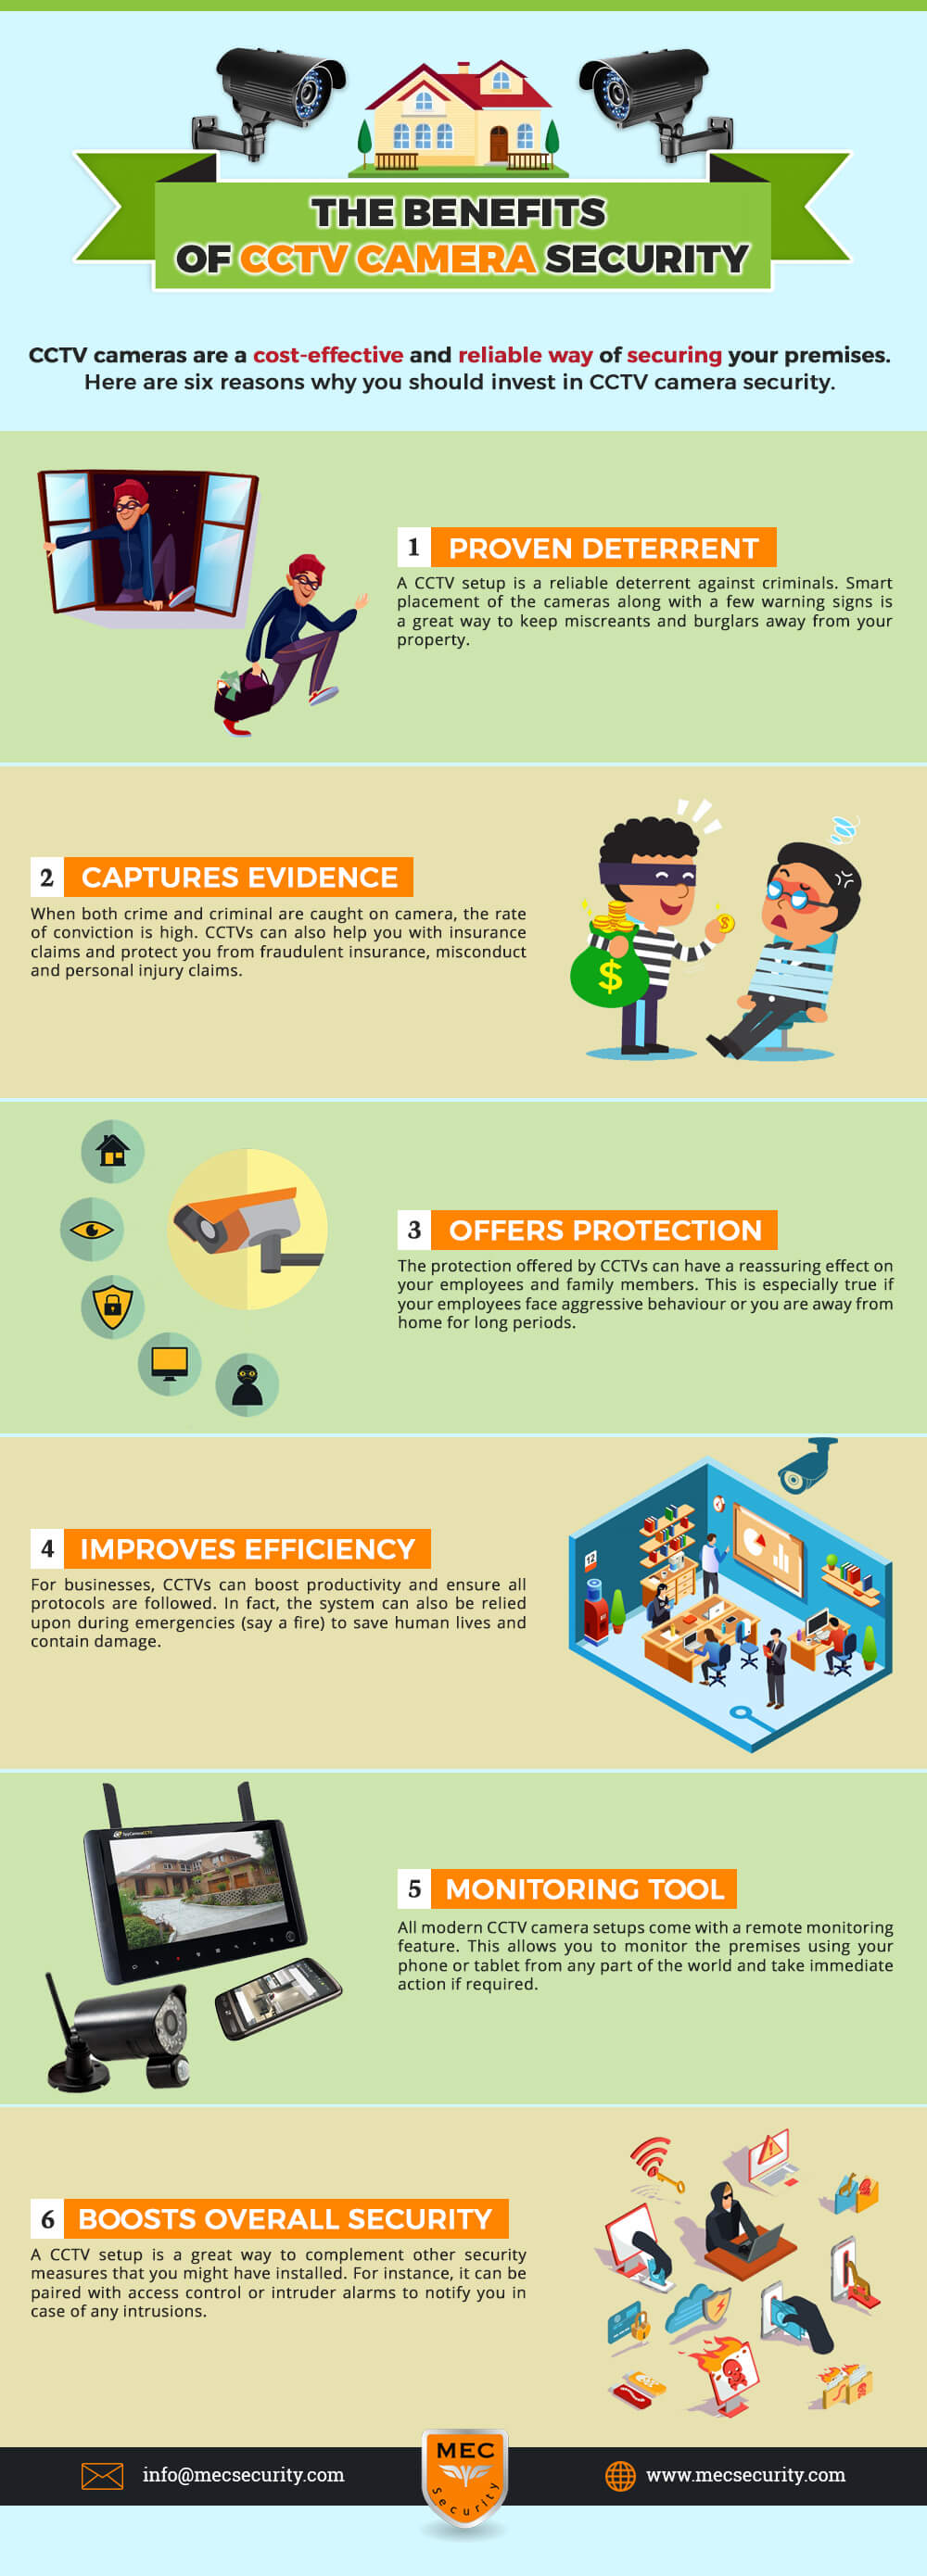 The Benefits of CCTV Camera Security #infographic